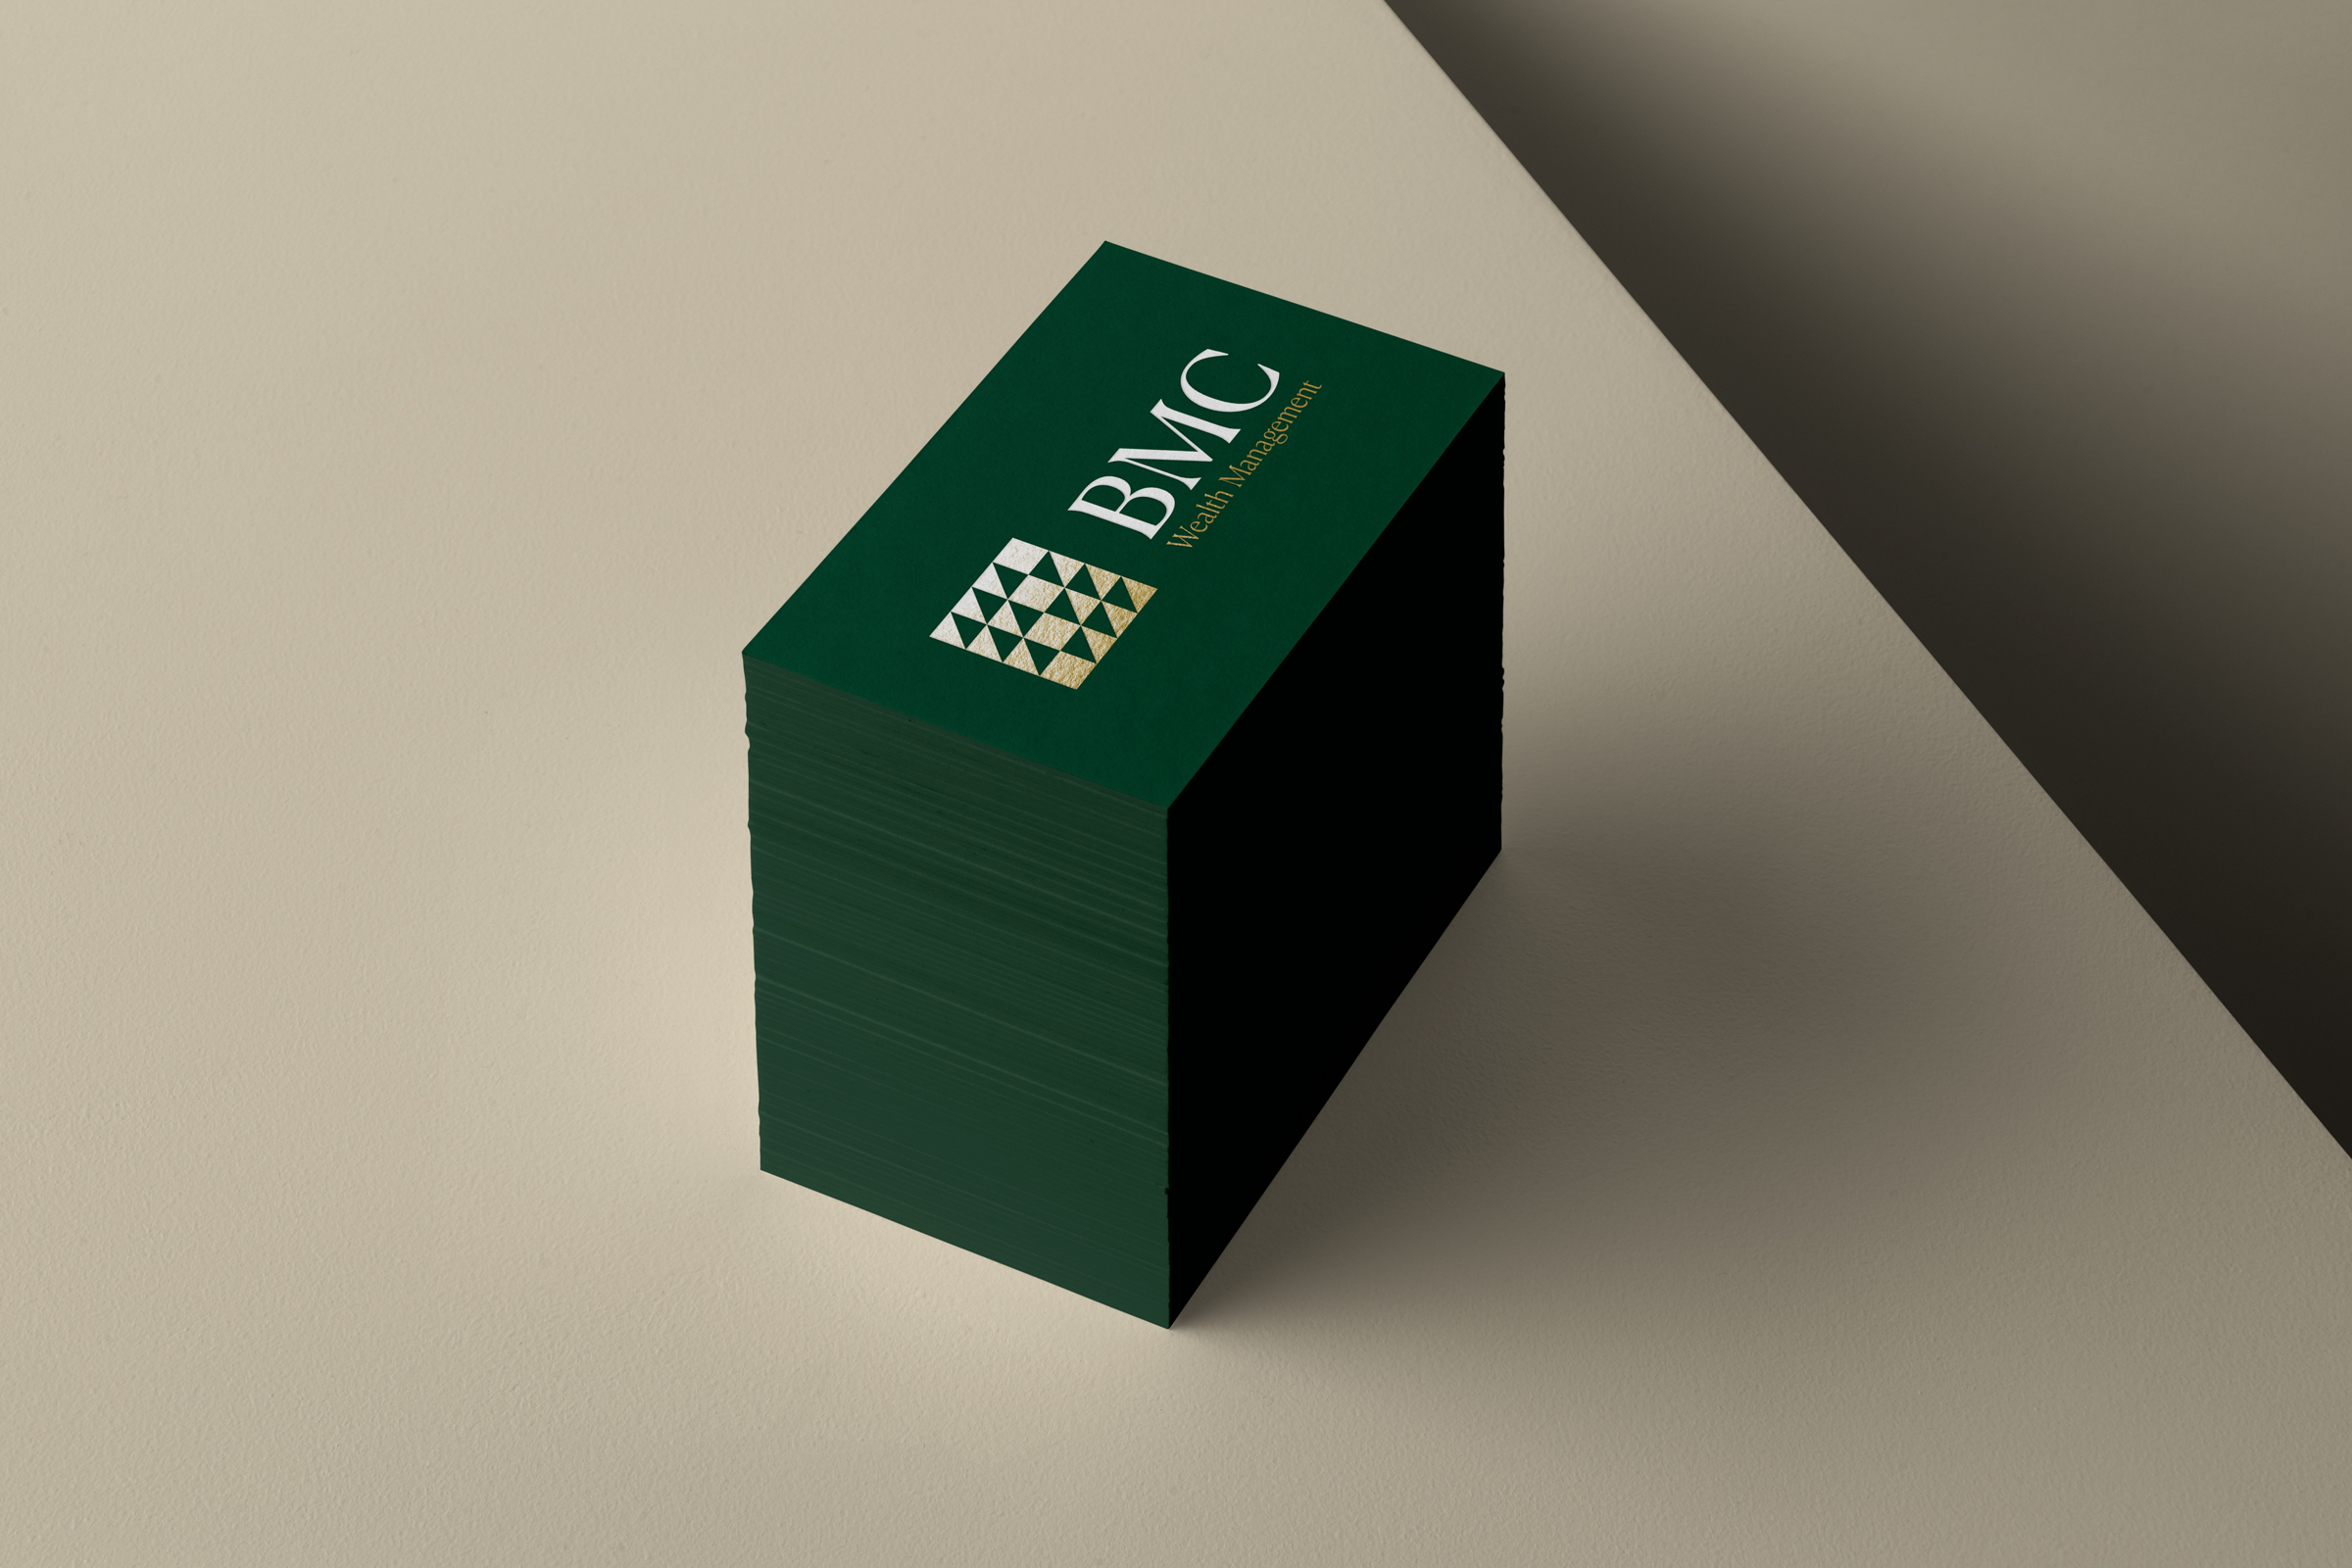 BMC Wealth Management stack of business cards on table